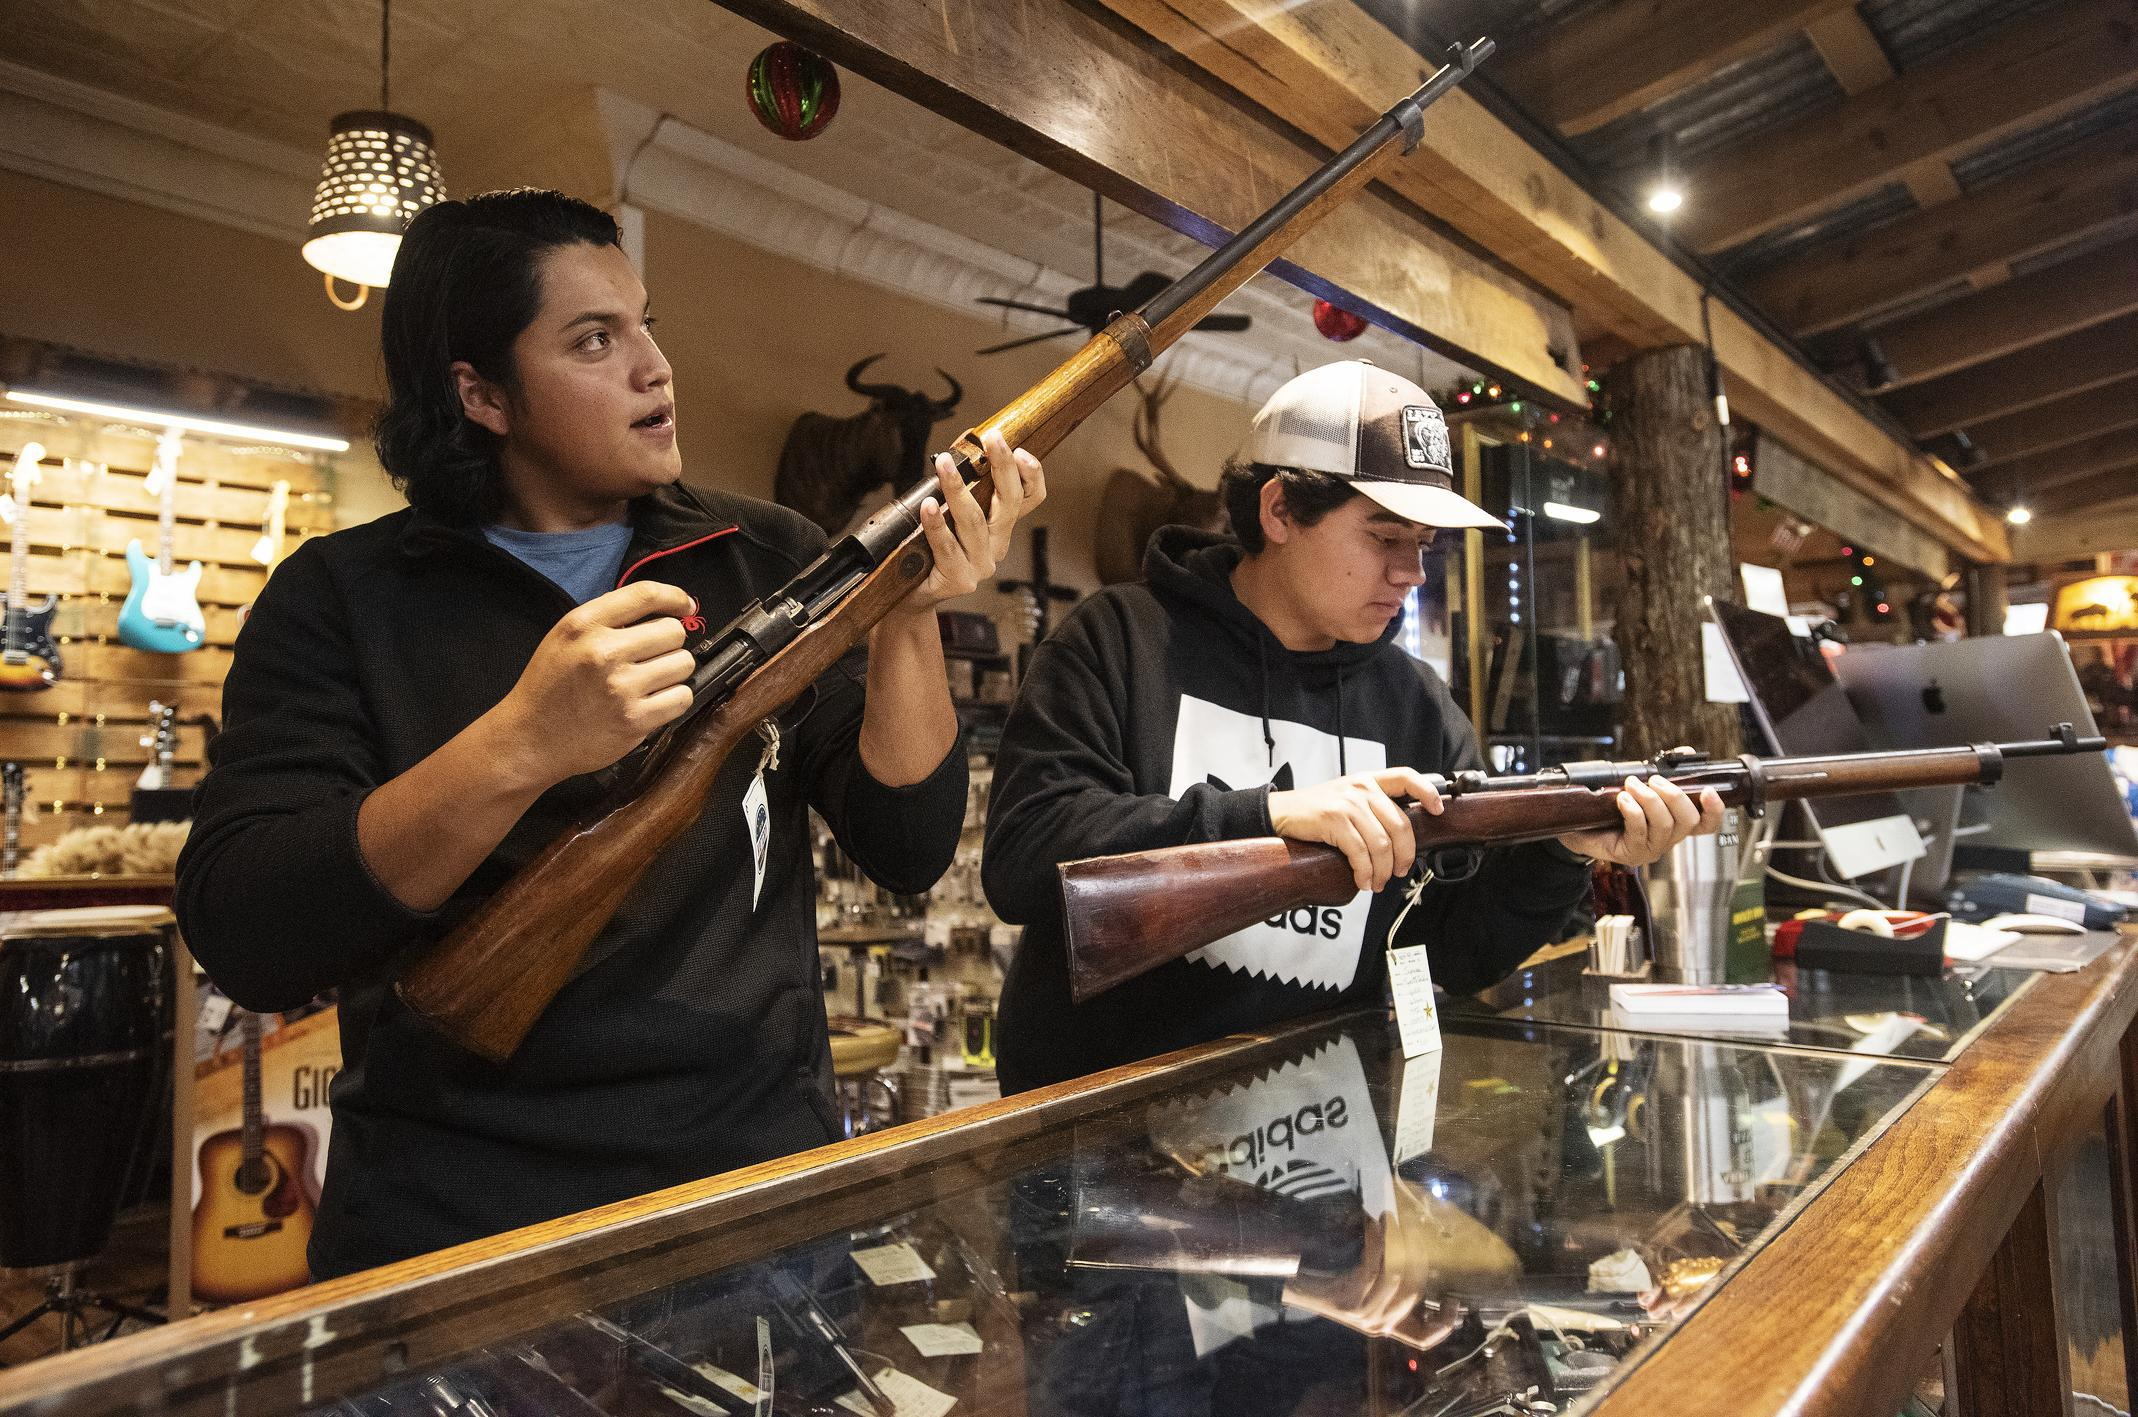 National gun sales reach record while new laws slow gun purchases in Spokane